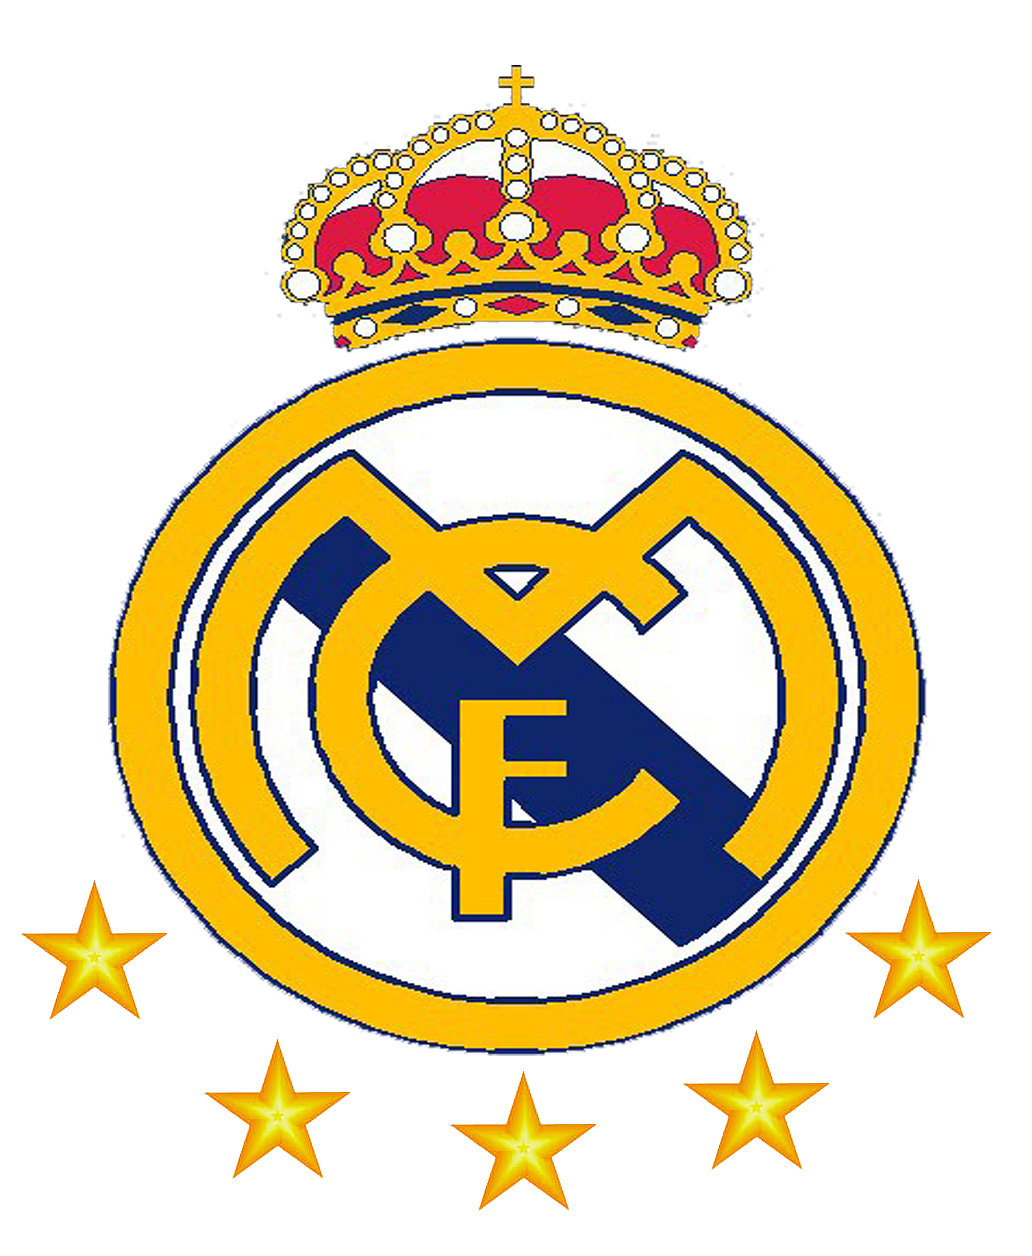 Escudo Del Real Madrid Ecured 70ba137593b74